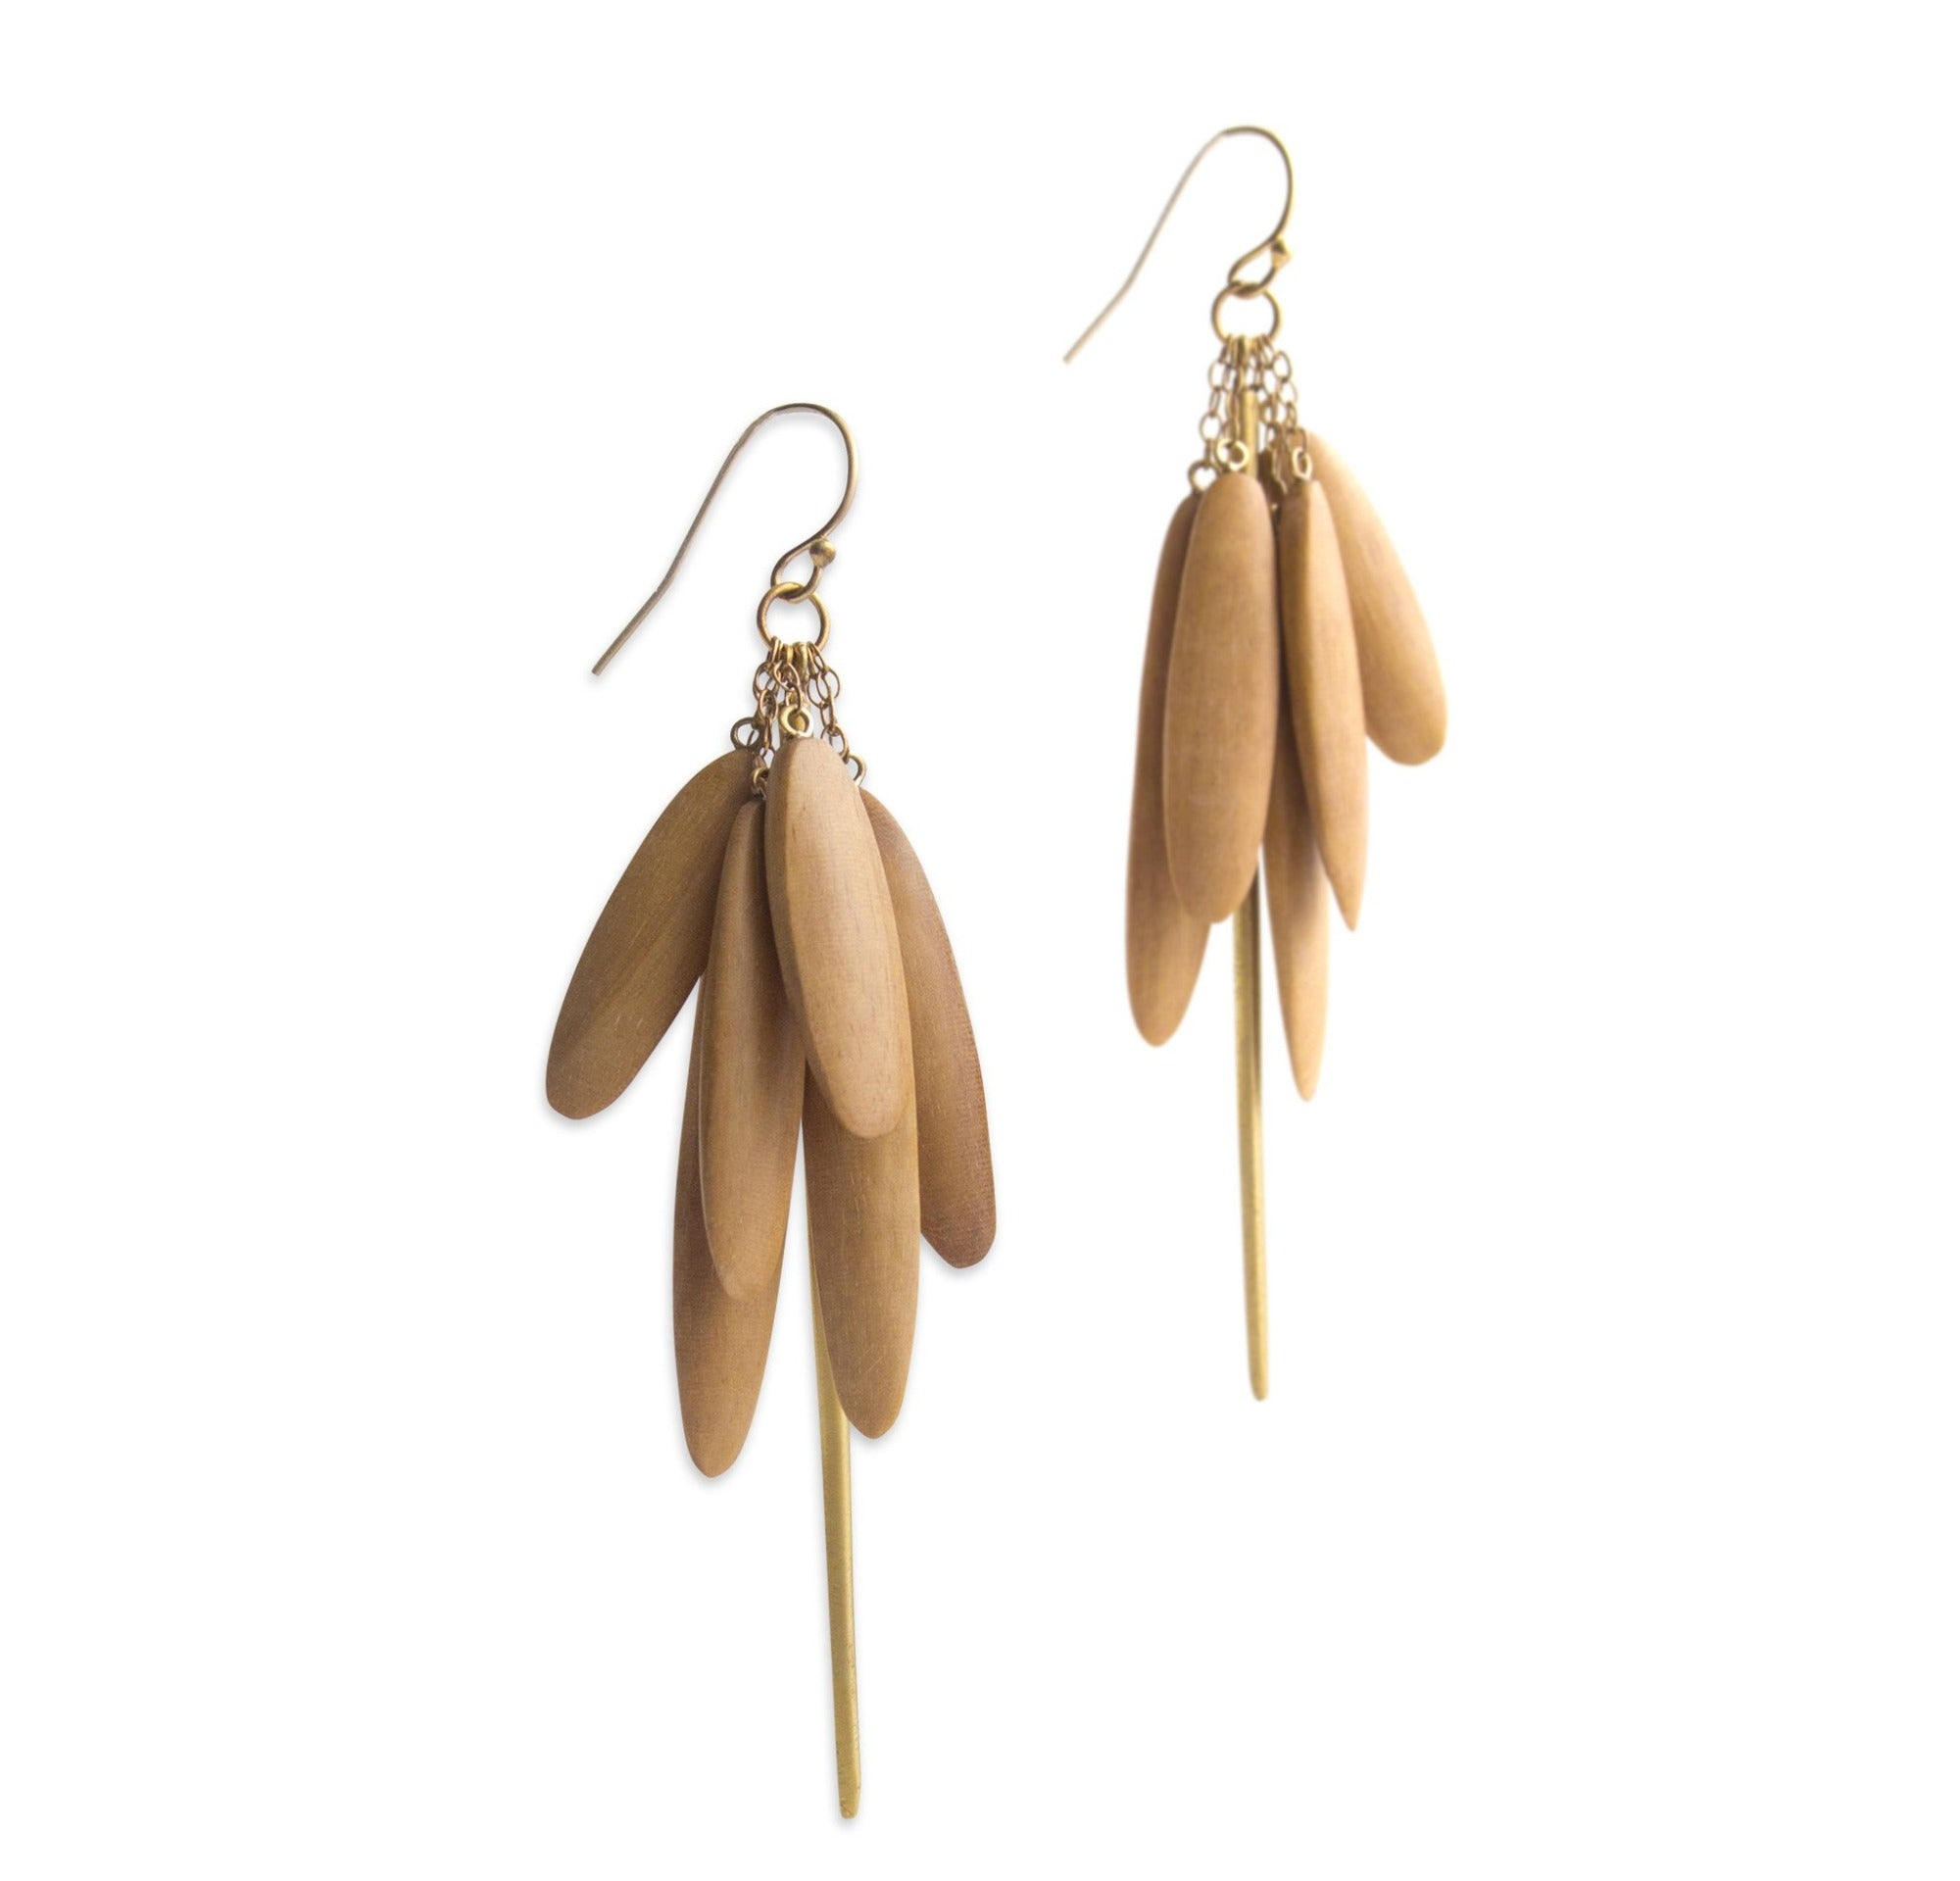 wood tassle & spicula earrings